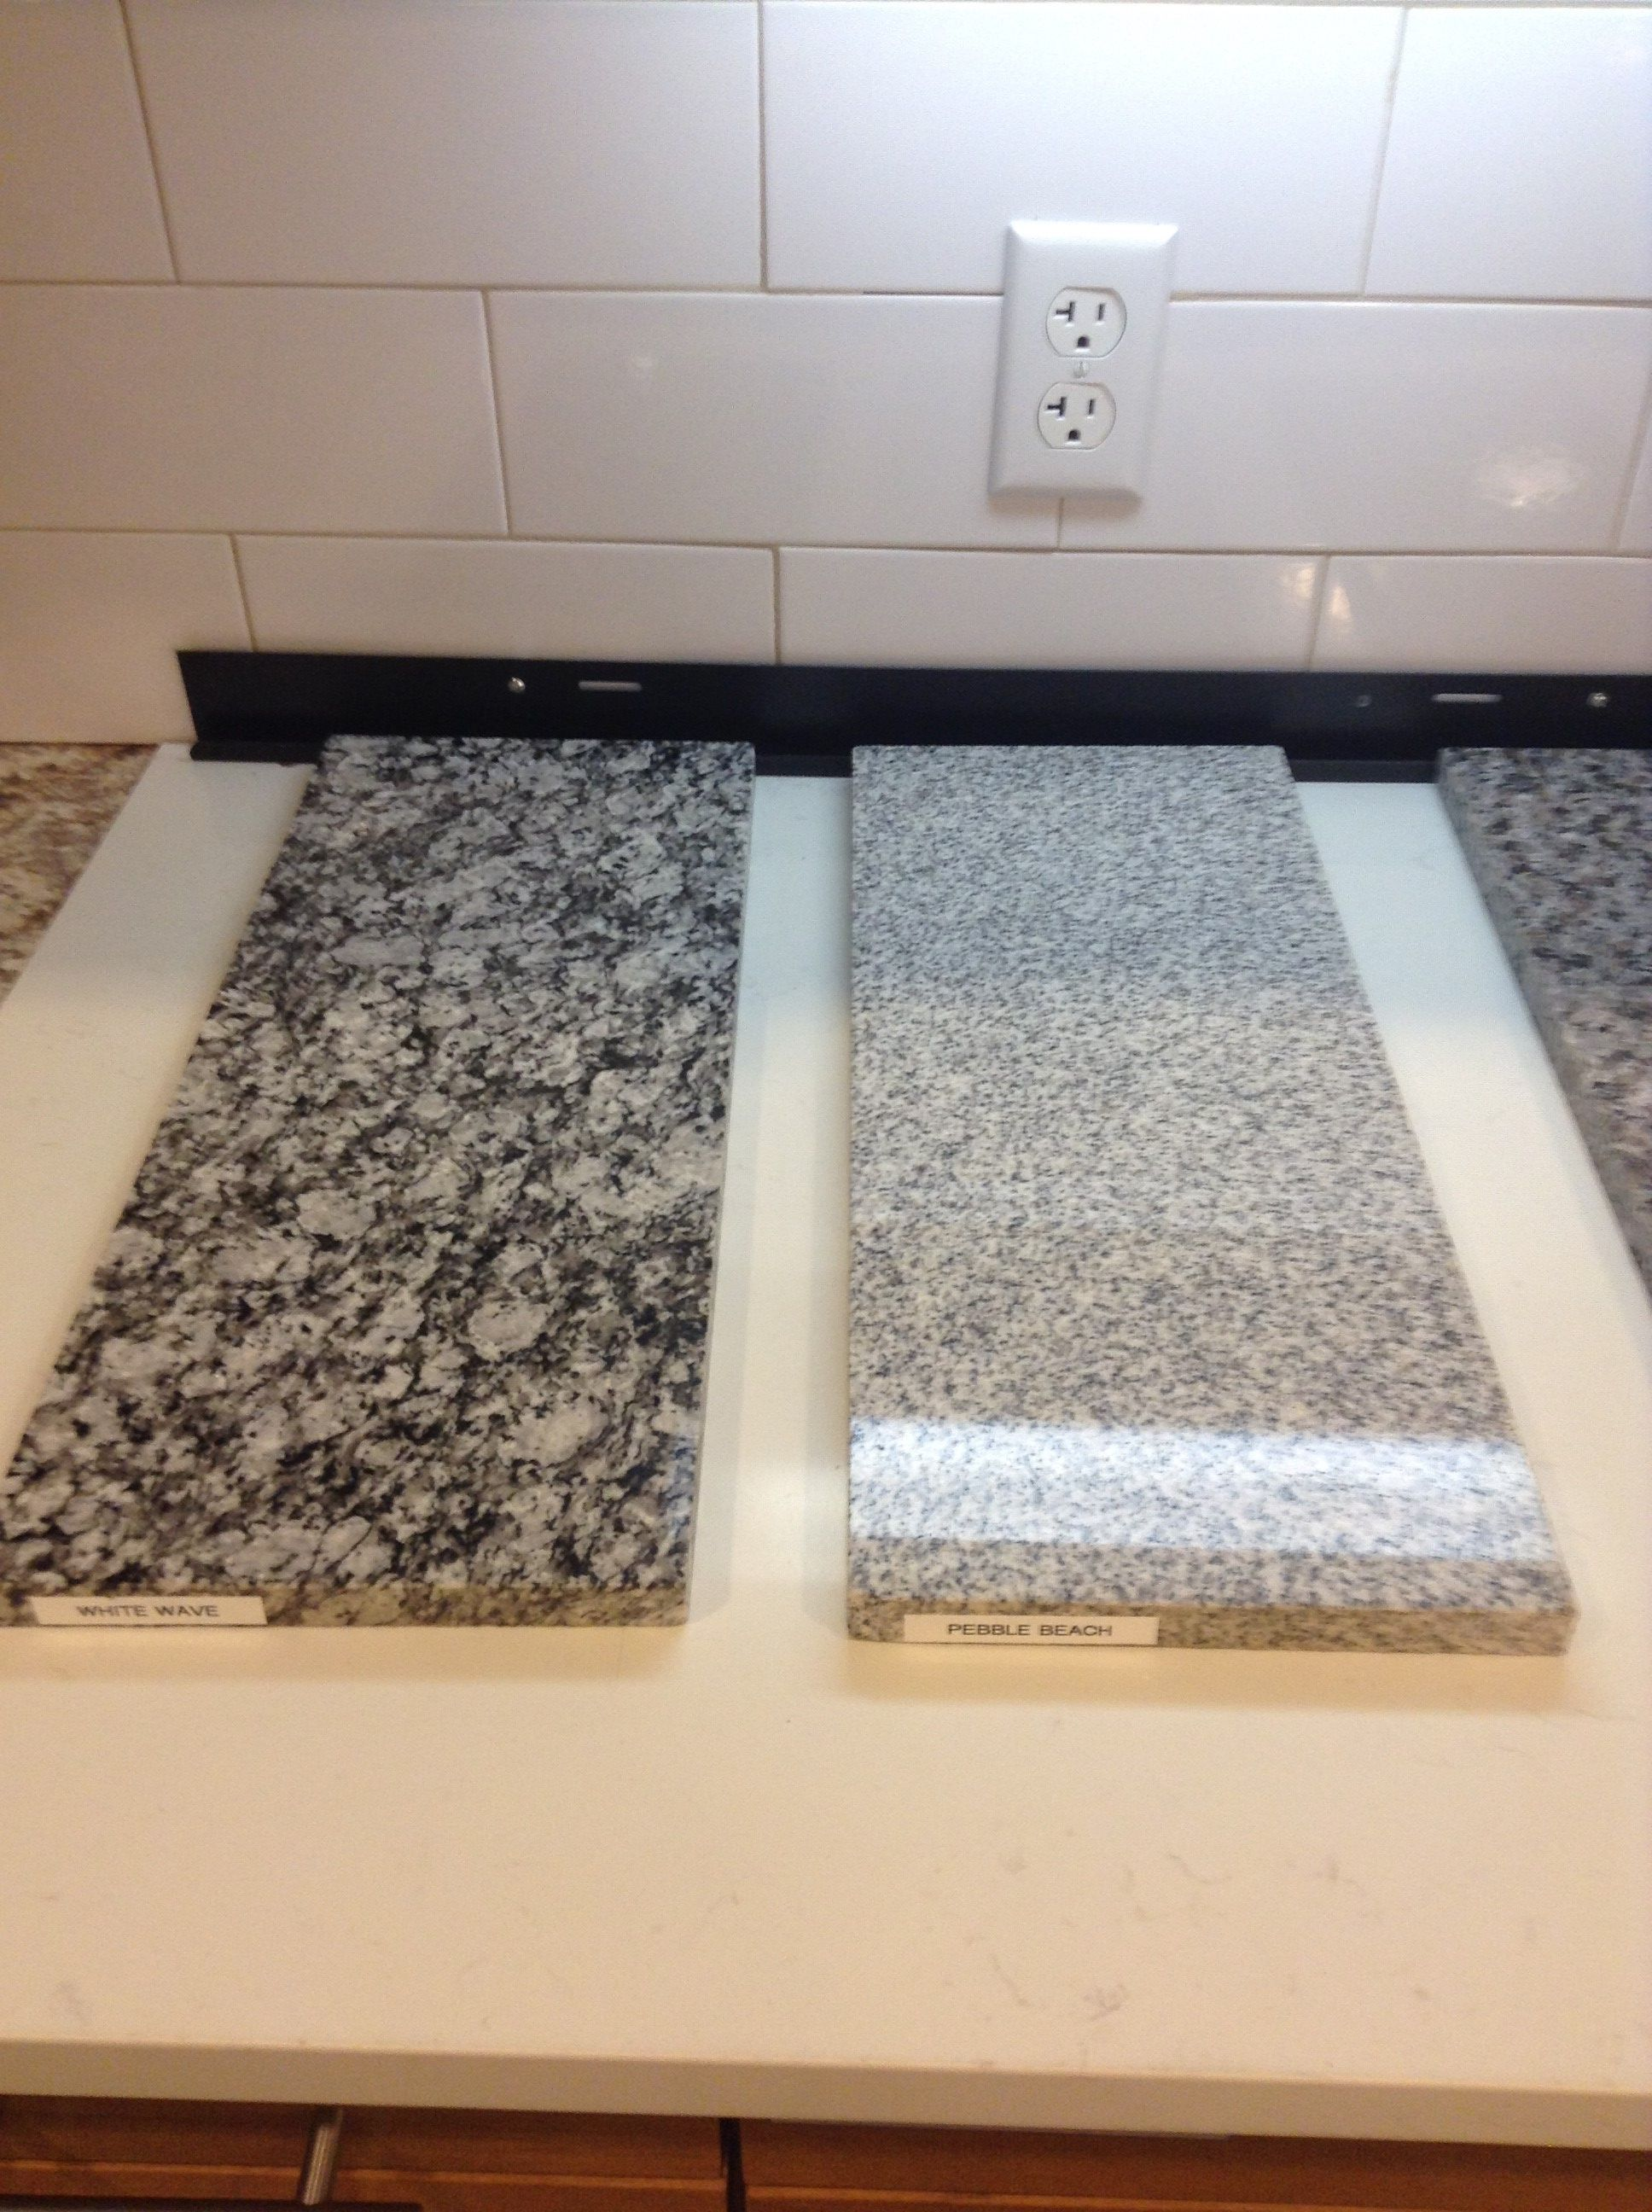 Included Granite Options 2 4 White Wave And Pebble Beach See Options Selection Packet For Included Counterto Granite Options Granite Countertops Countertops